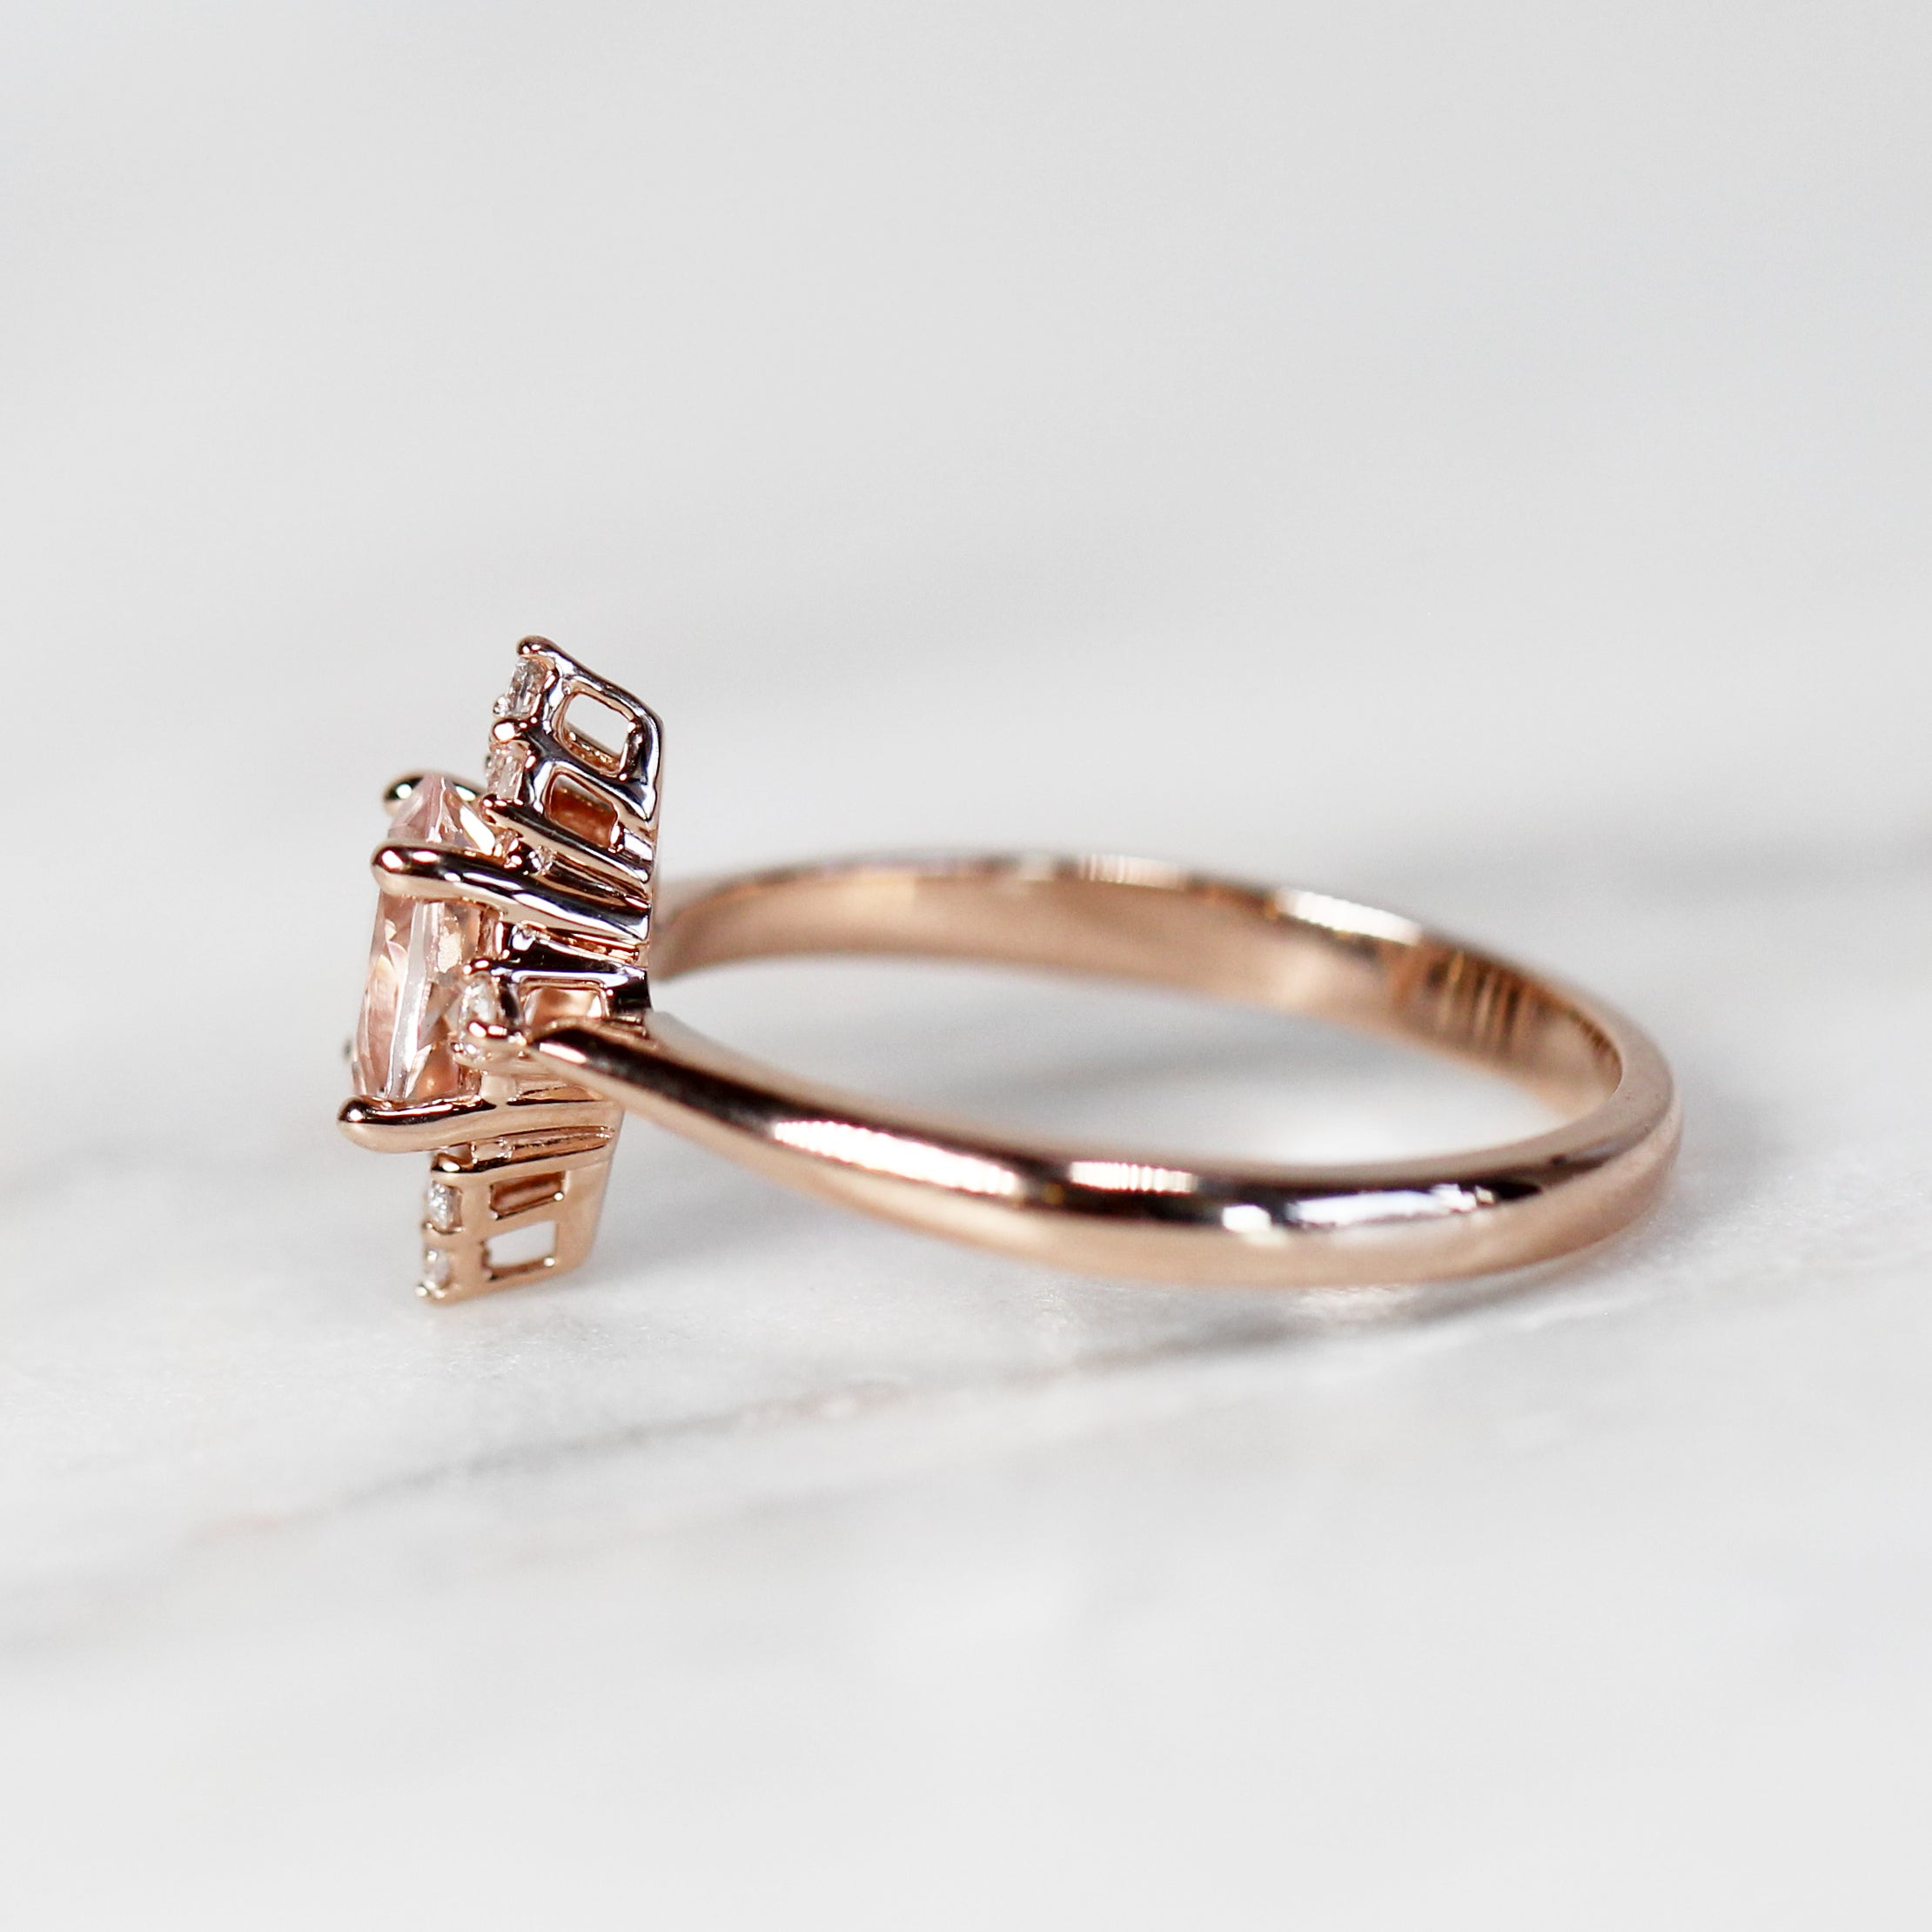 Emery Ring with 1.00 Carat Oval Morganite in 10k Rose Gold - Ready to Size and Ship - Midwinter Co. Alternative Bridal Rings and Modern Fine Jewelry